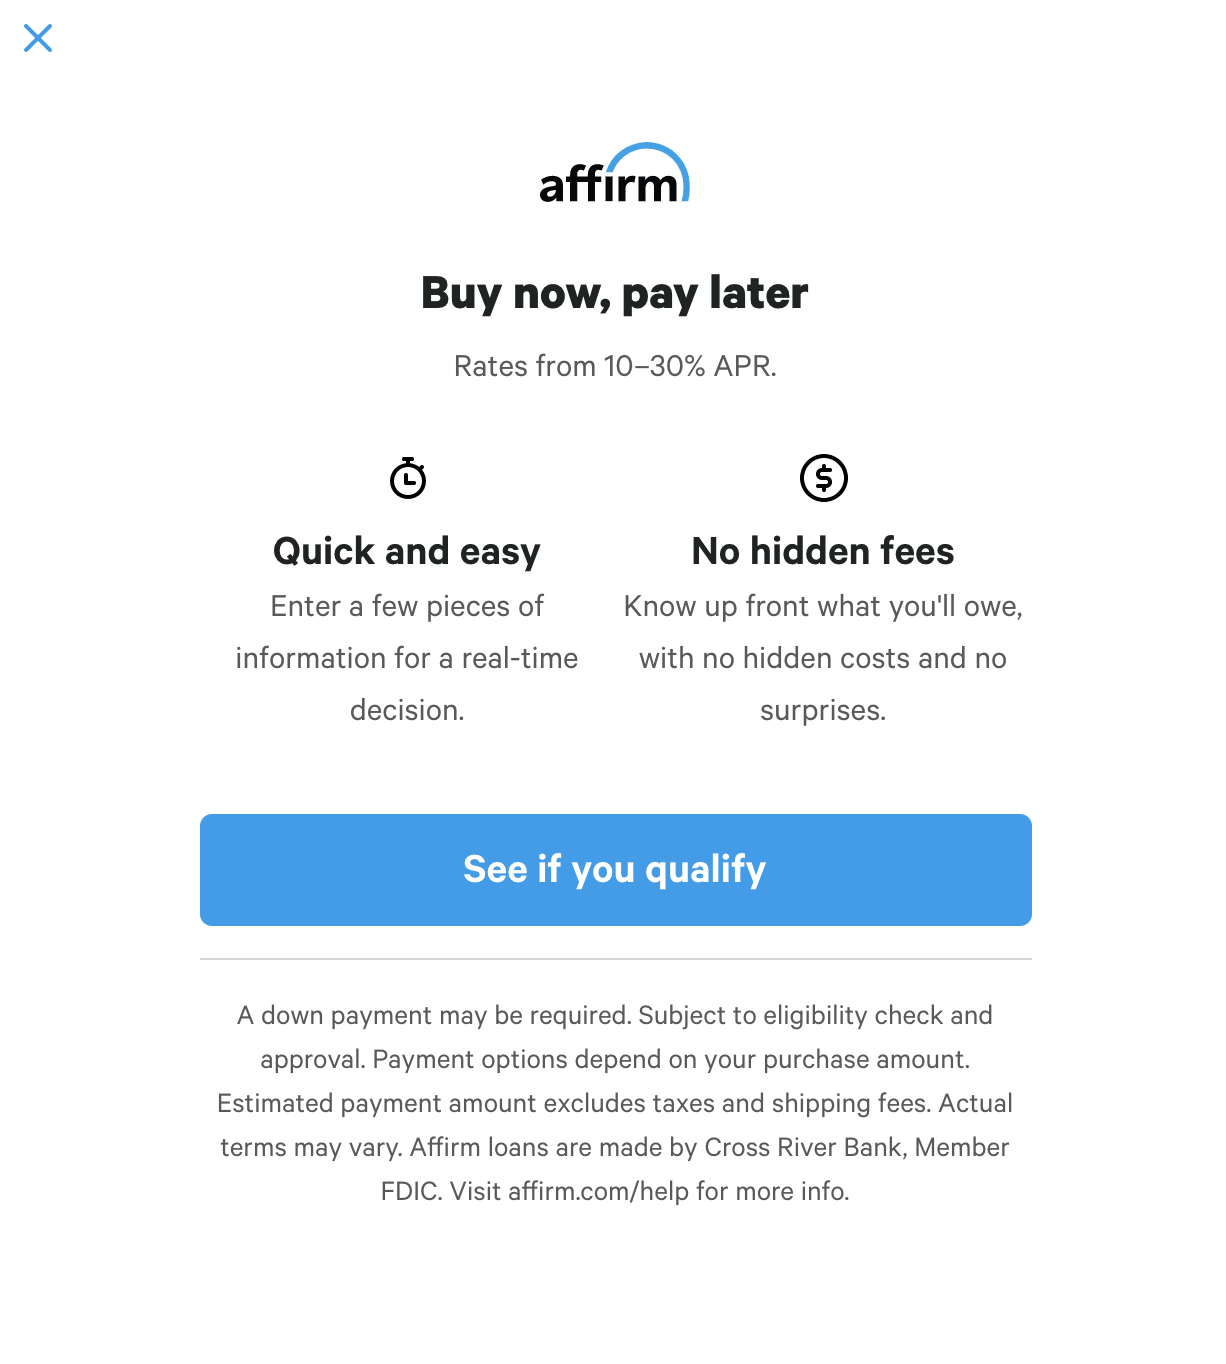 Affirm boosts your brand and reduces risk